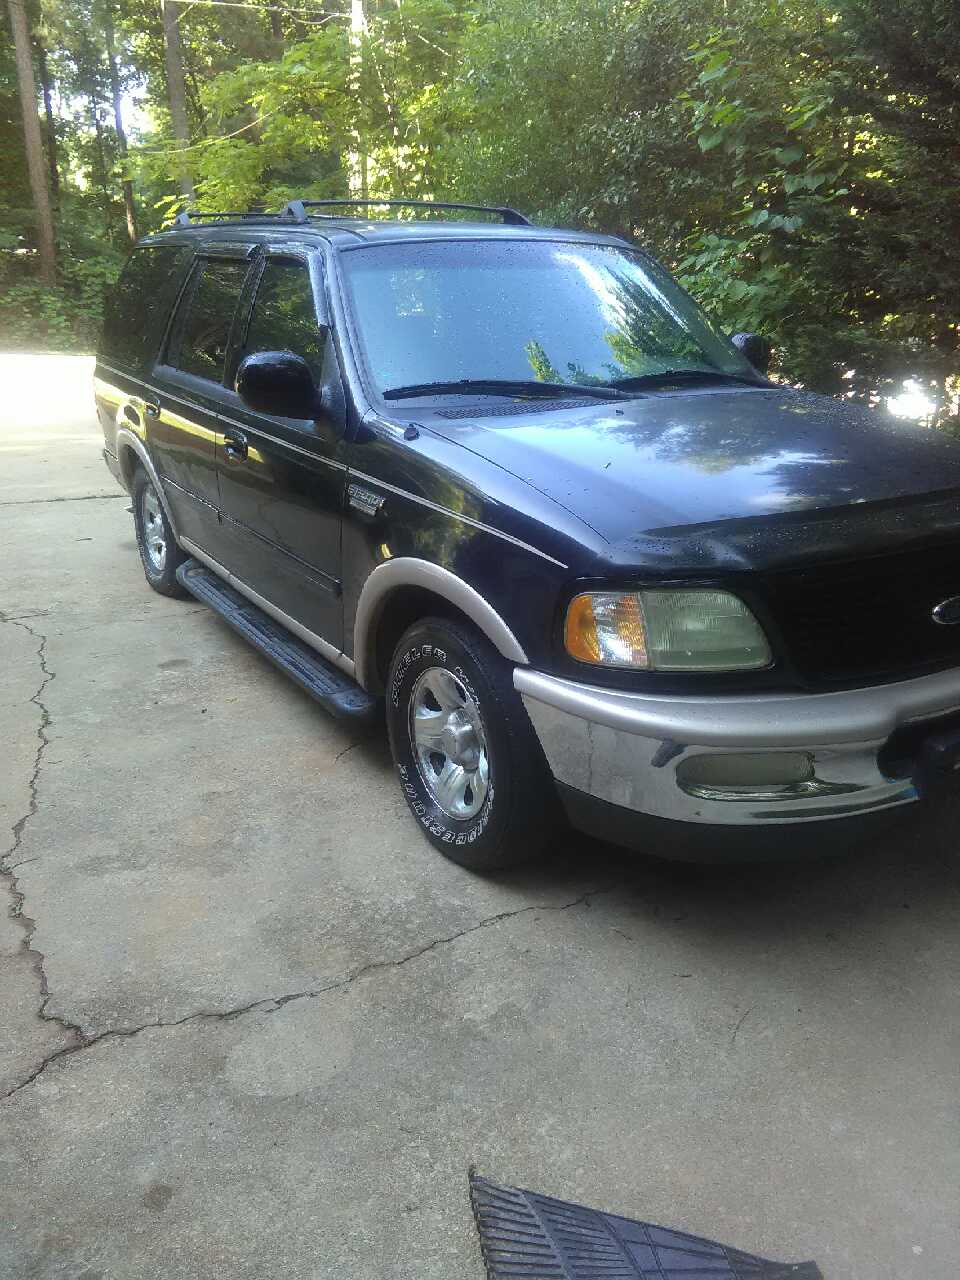 letgo 97 ford expedition for sale in conyers ga. Black Bedroom Furniture Sets. Home Design Ideas